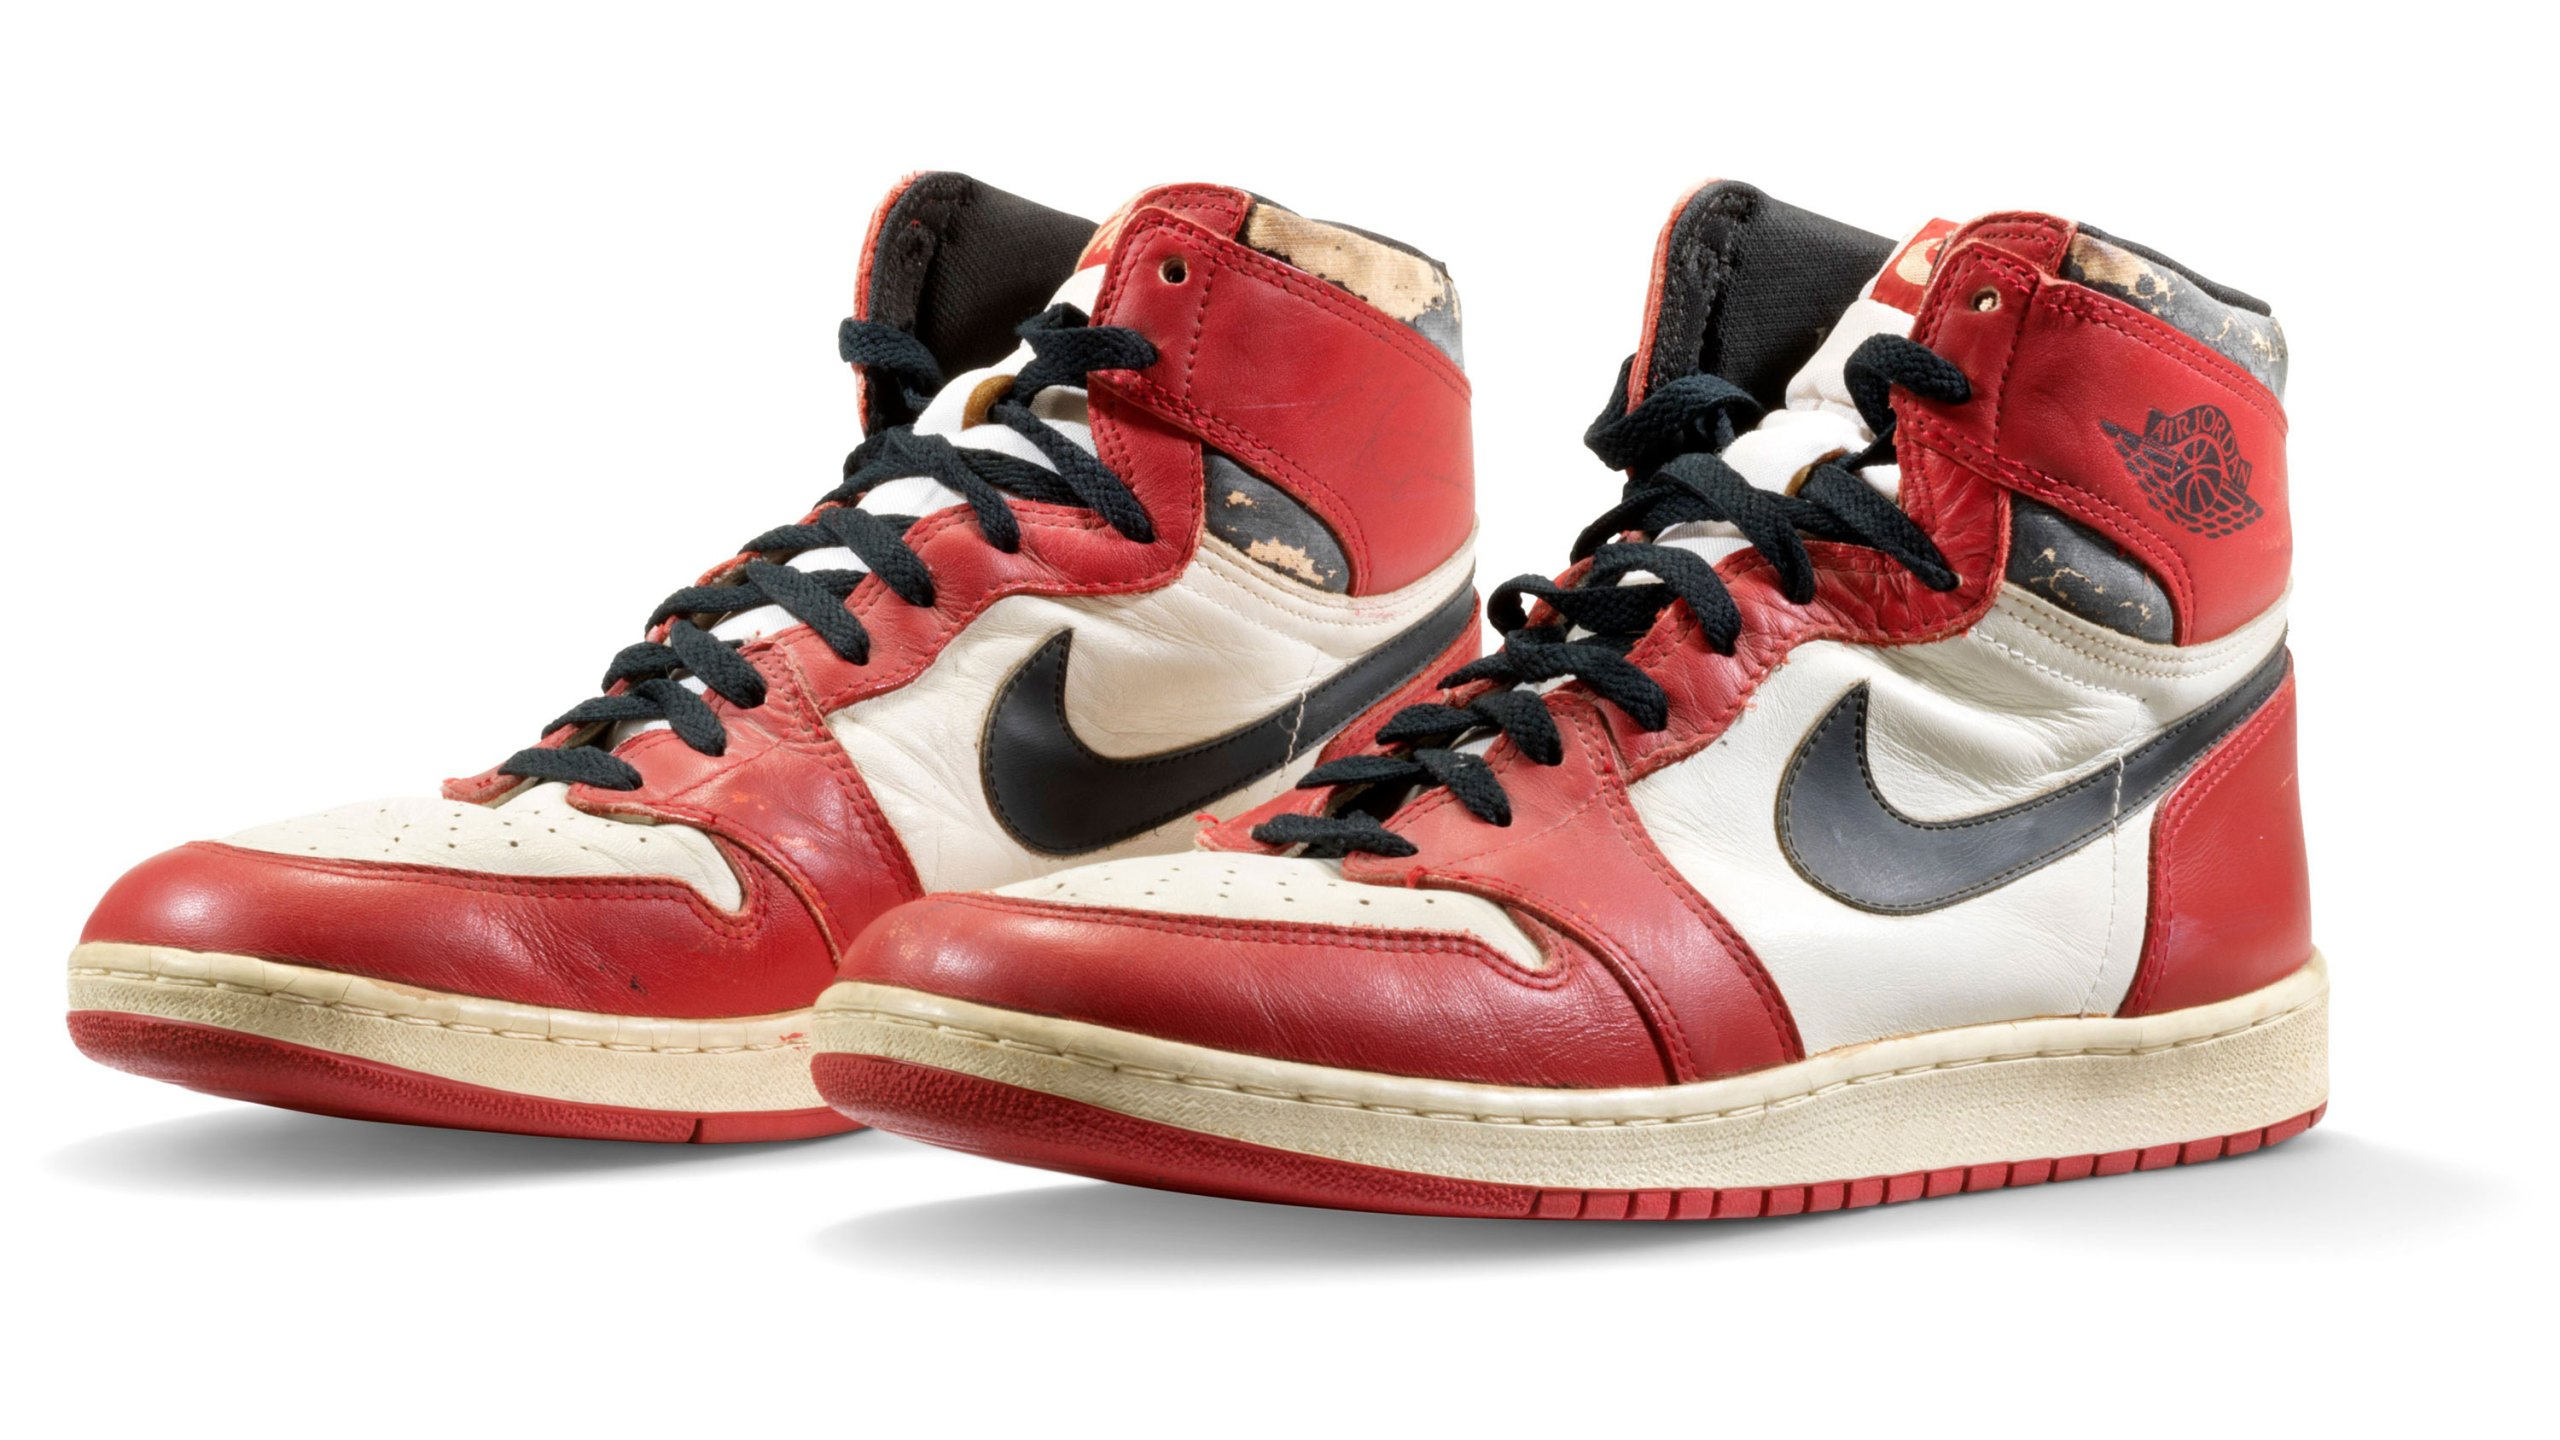 A pair of Michael Jordan's sneakers from 1985 have sold at auction for $615,000. (CNN)